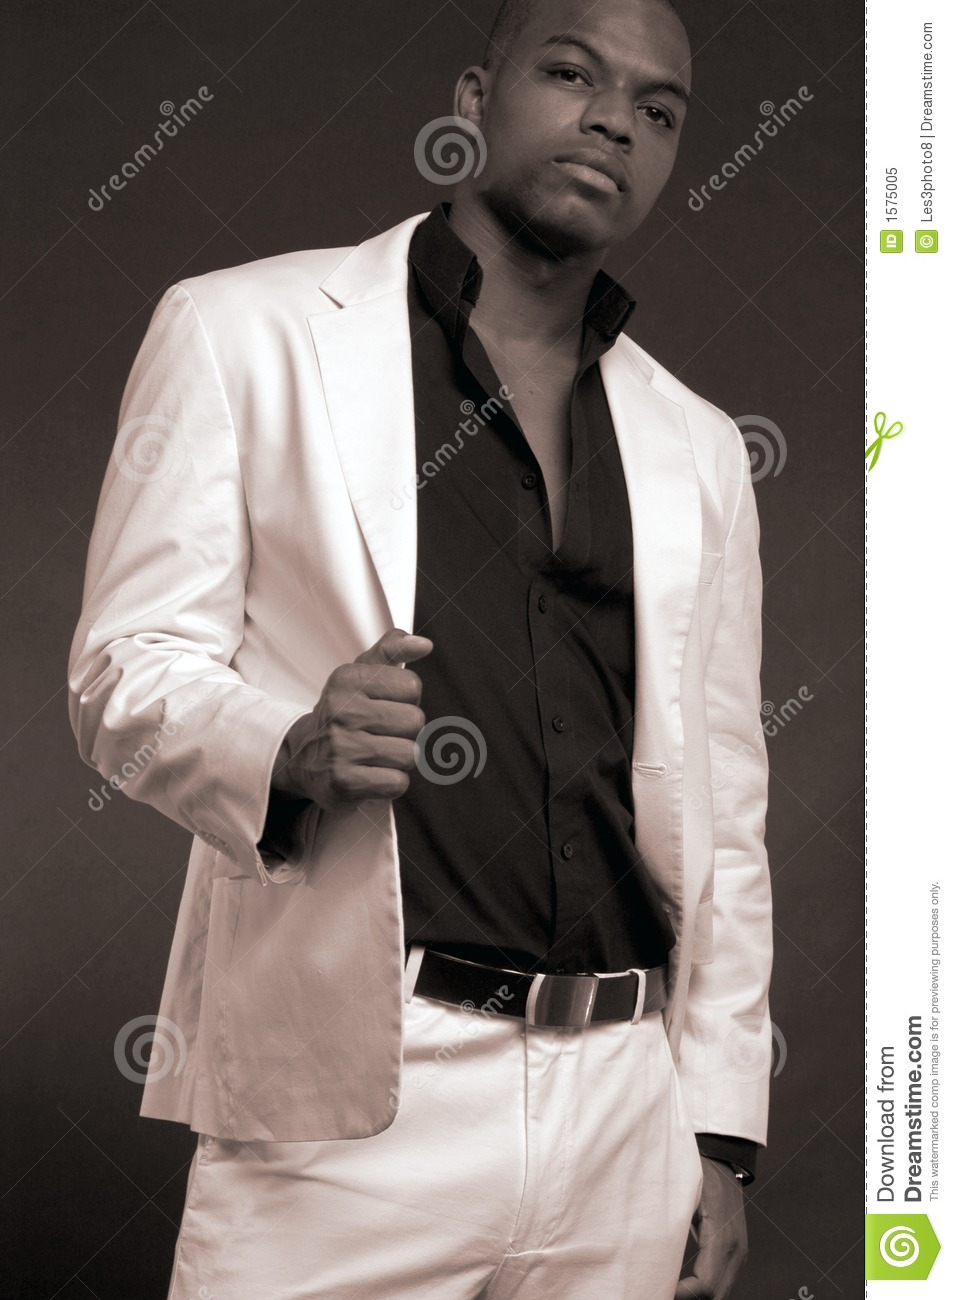 Man In A White Suit Royalty Free Stock Photo - Image: 1575005